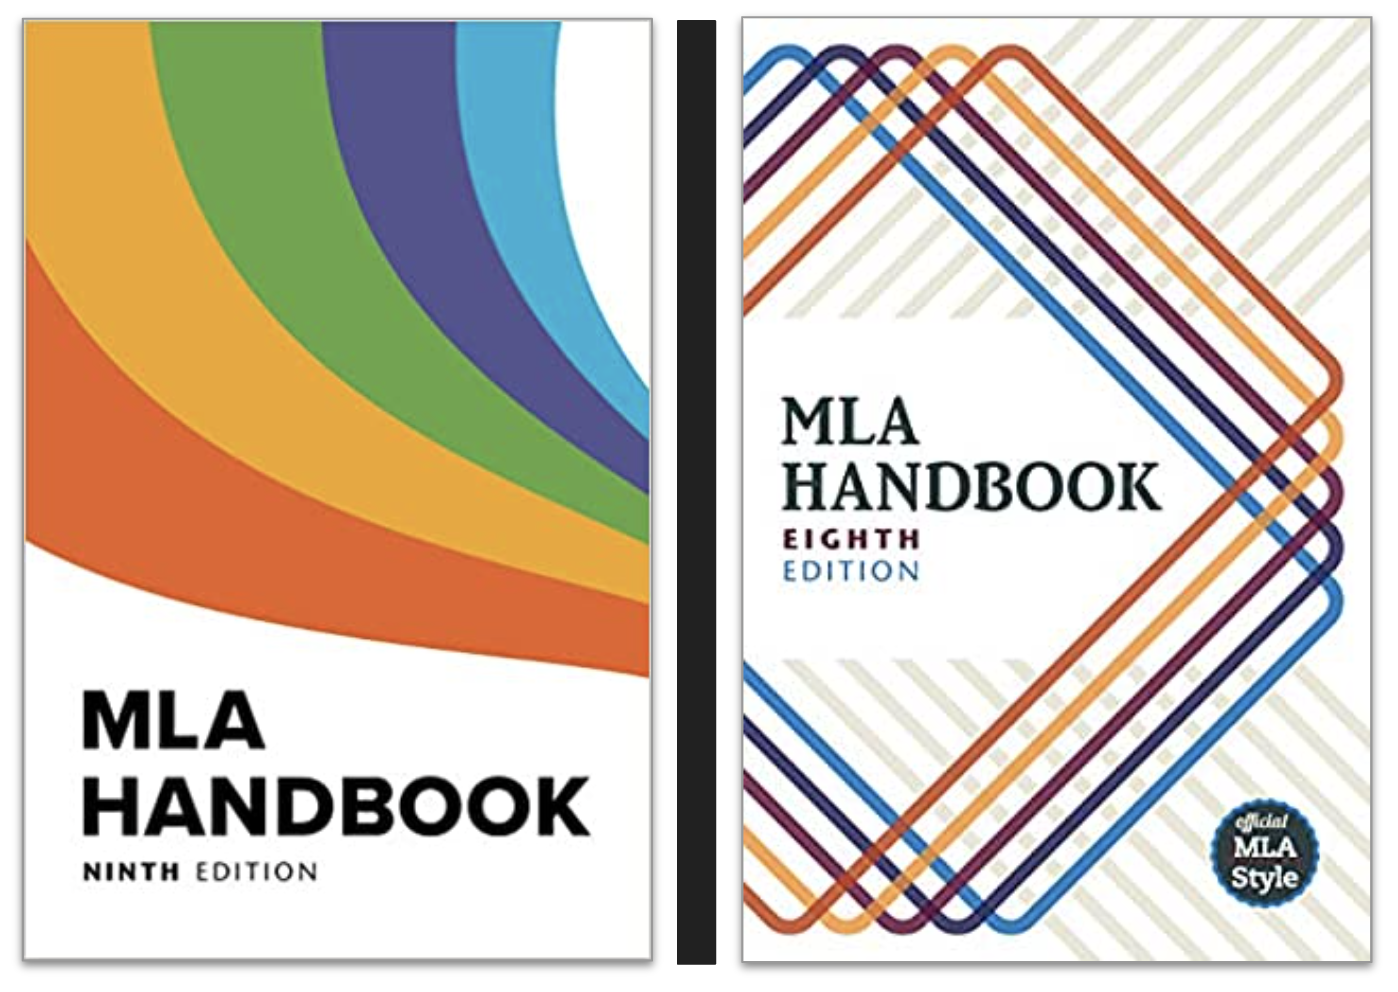 Jacket covers of the 8th and 9th edition of the MLA Handbook